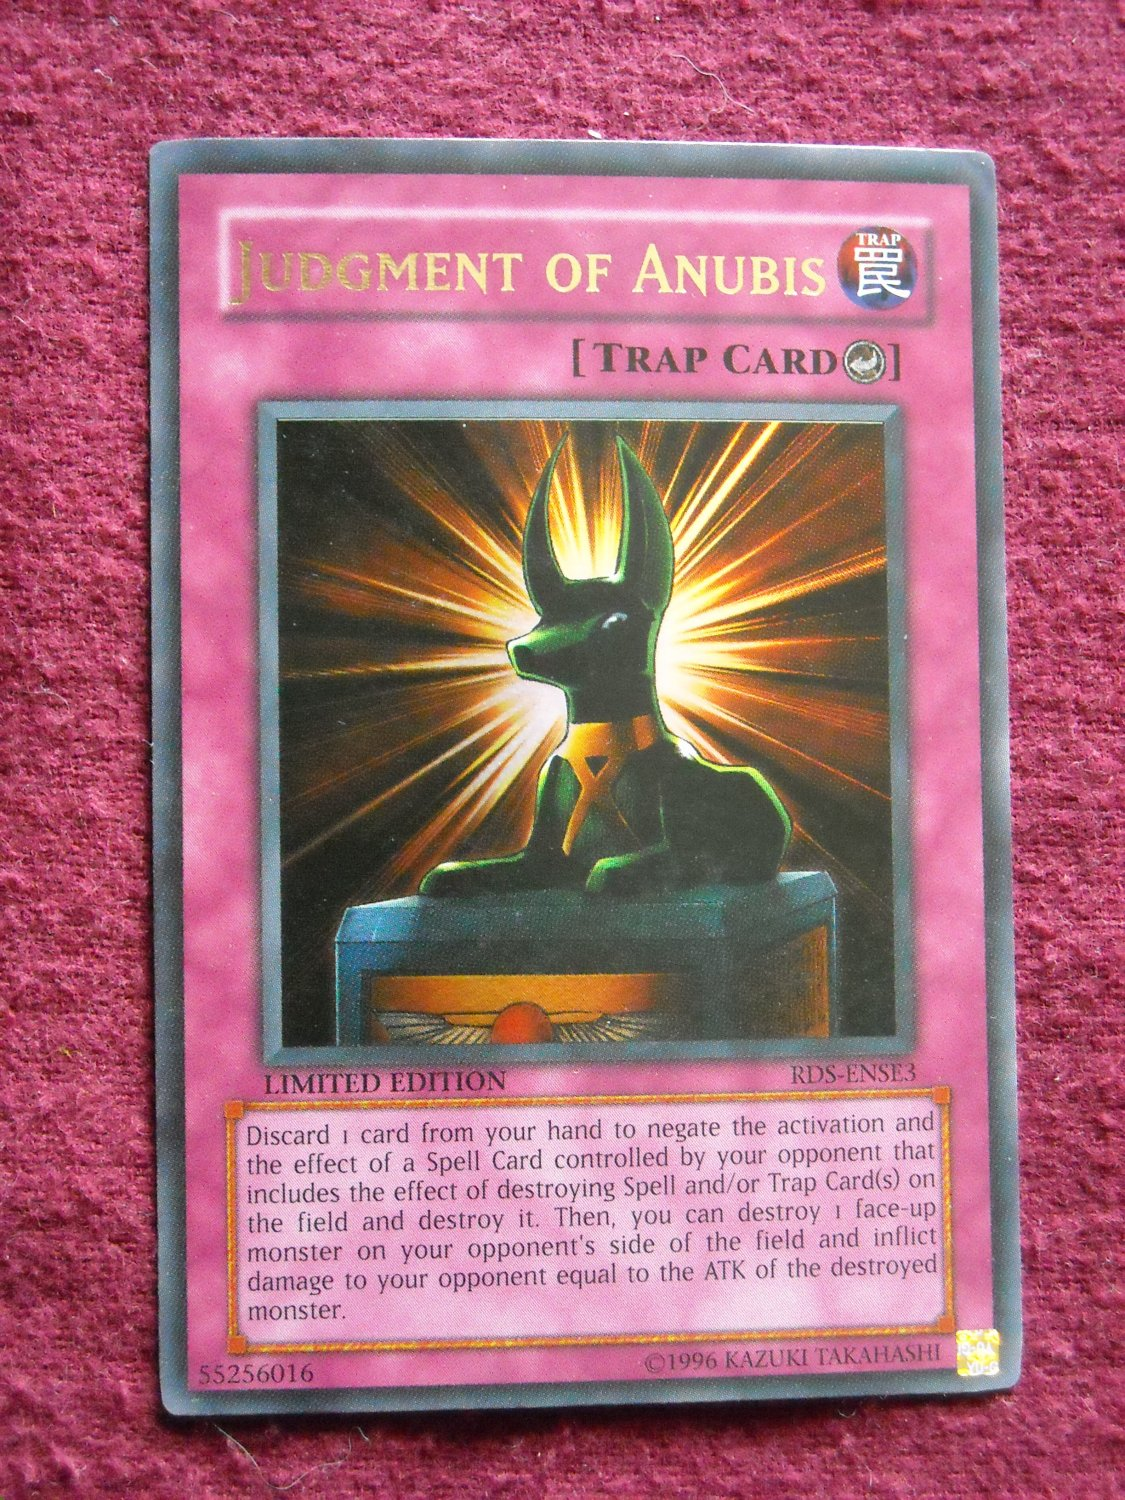 yu gi oh judgment of anubis rds ense3 counter trap card yugioh